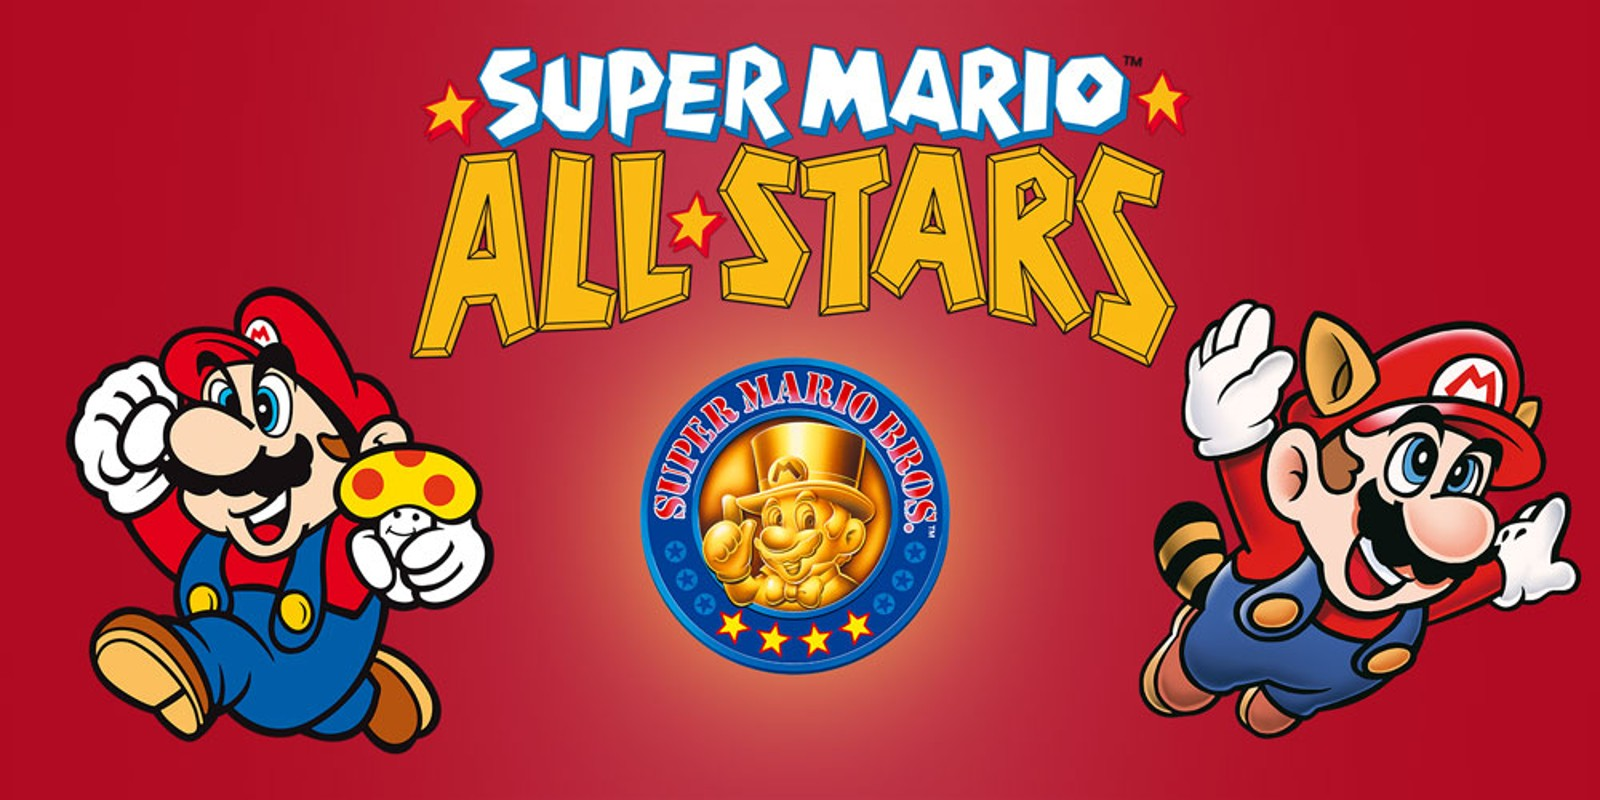 25 Anniversary Gift For Parents >> Super Mario All-Stars - 25th Anniversary Edition   Wii   Games   Nintendo